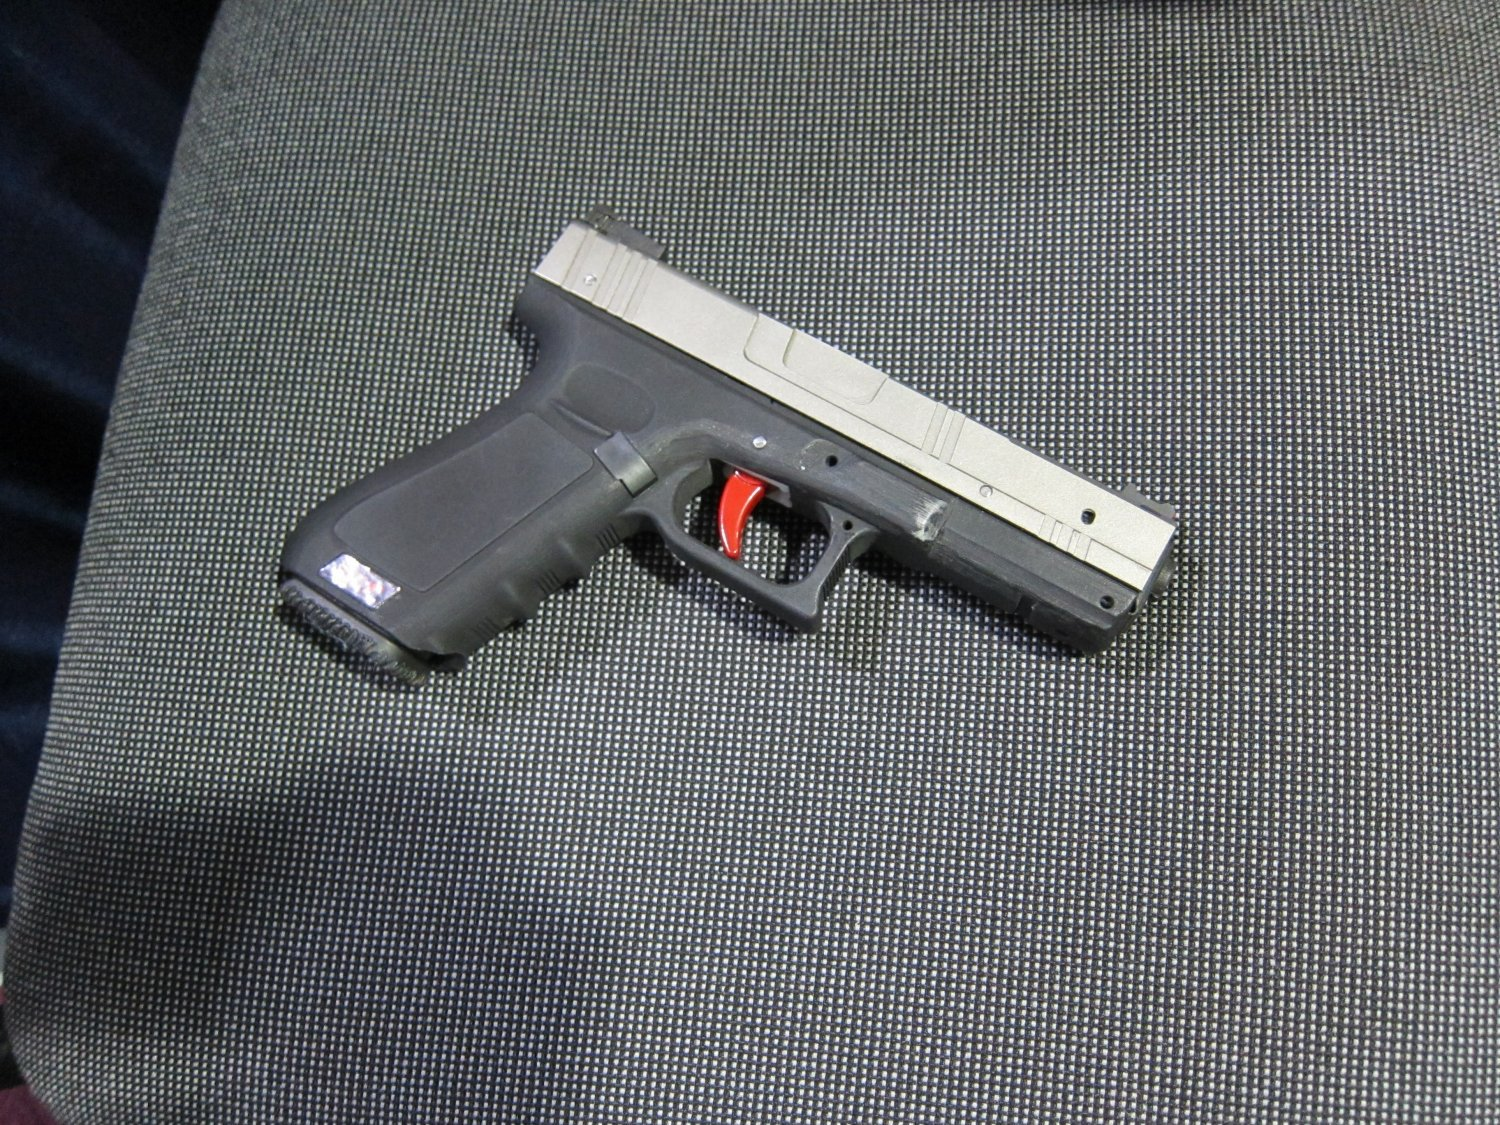 <!--:en-->Next Level Training (NLT) SIRT Training Pistol: Glock-Simulating Laser Training Pistol (with Auto-Resetting Trigger) for Better Shooting and Trigger Mechanics<!--:-->